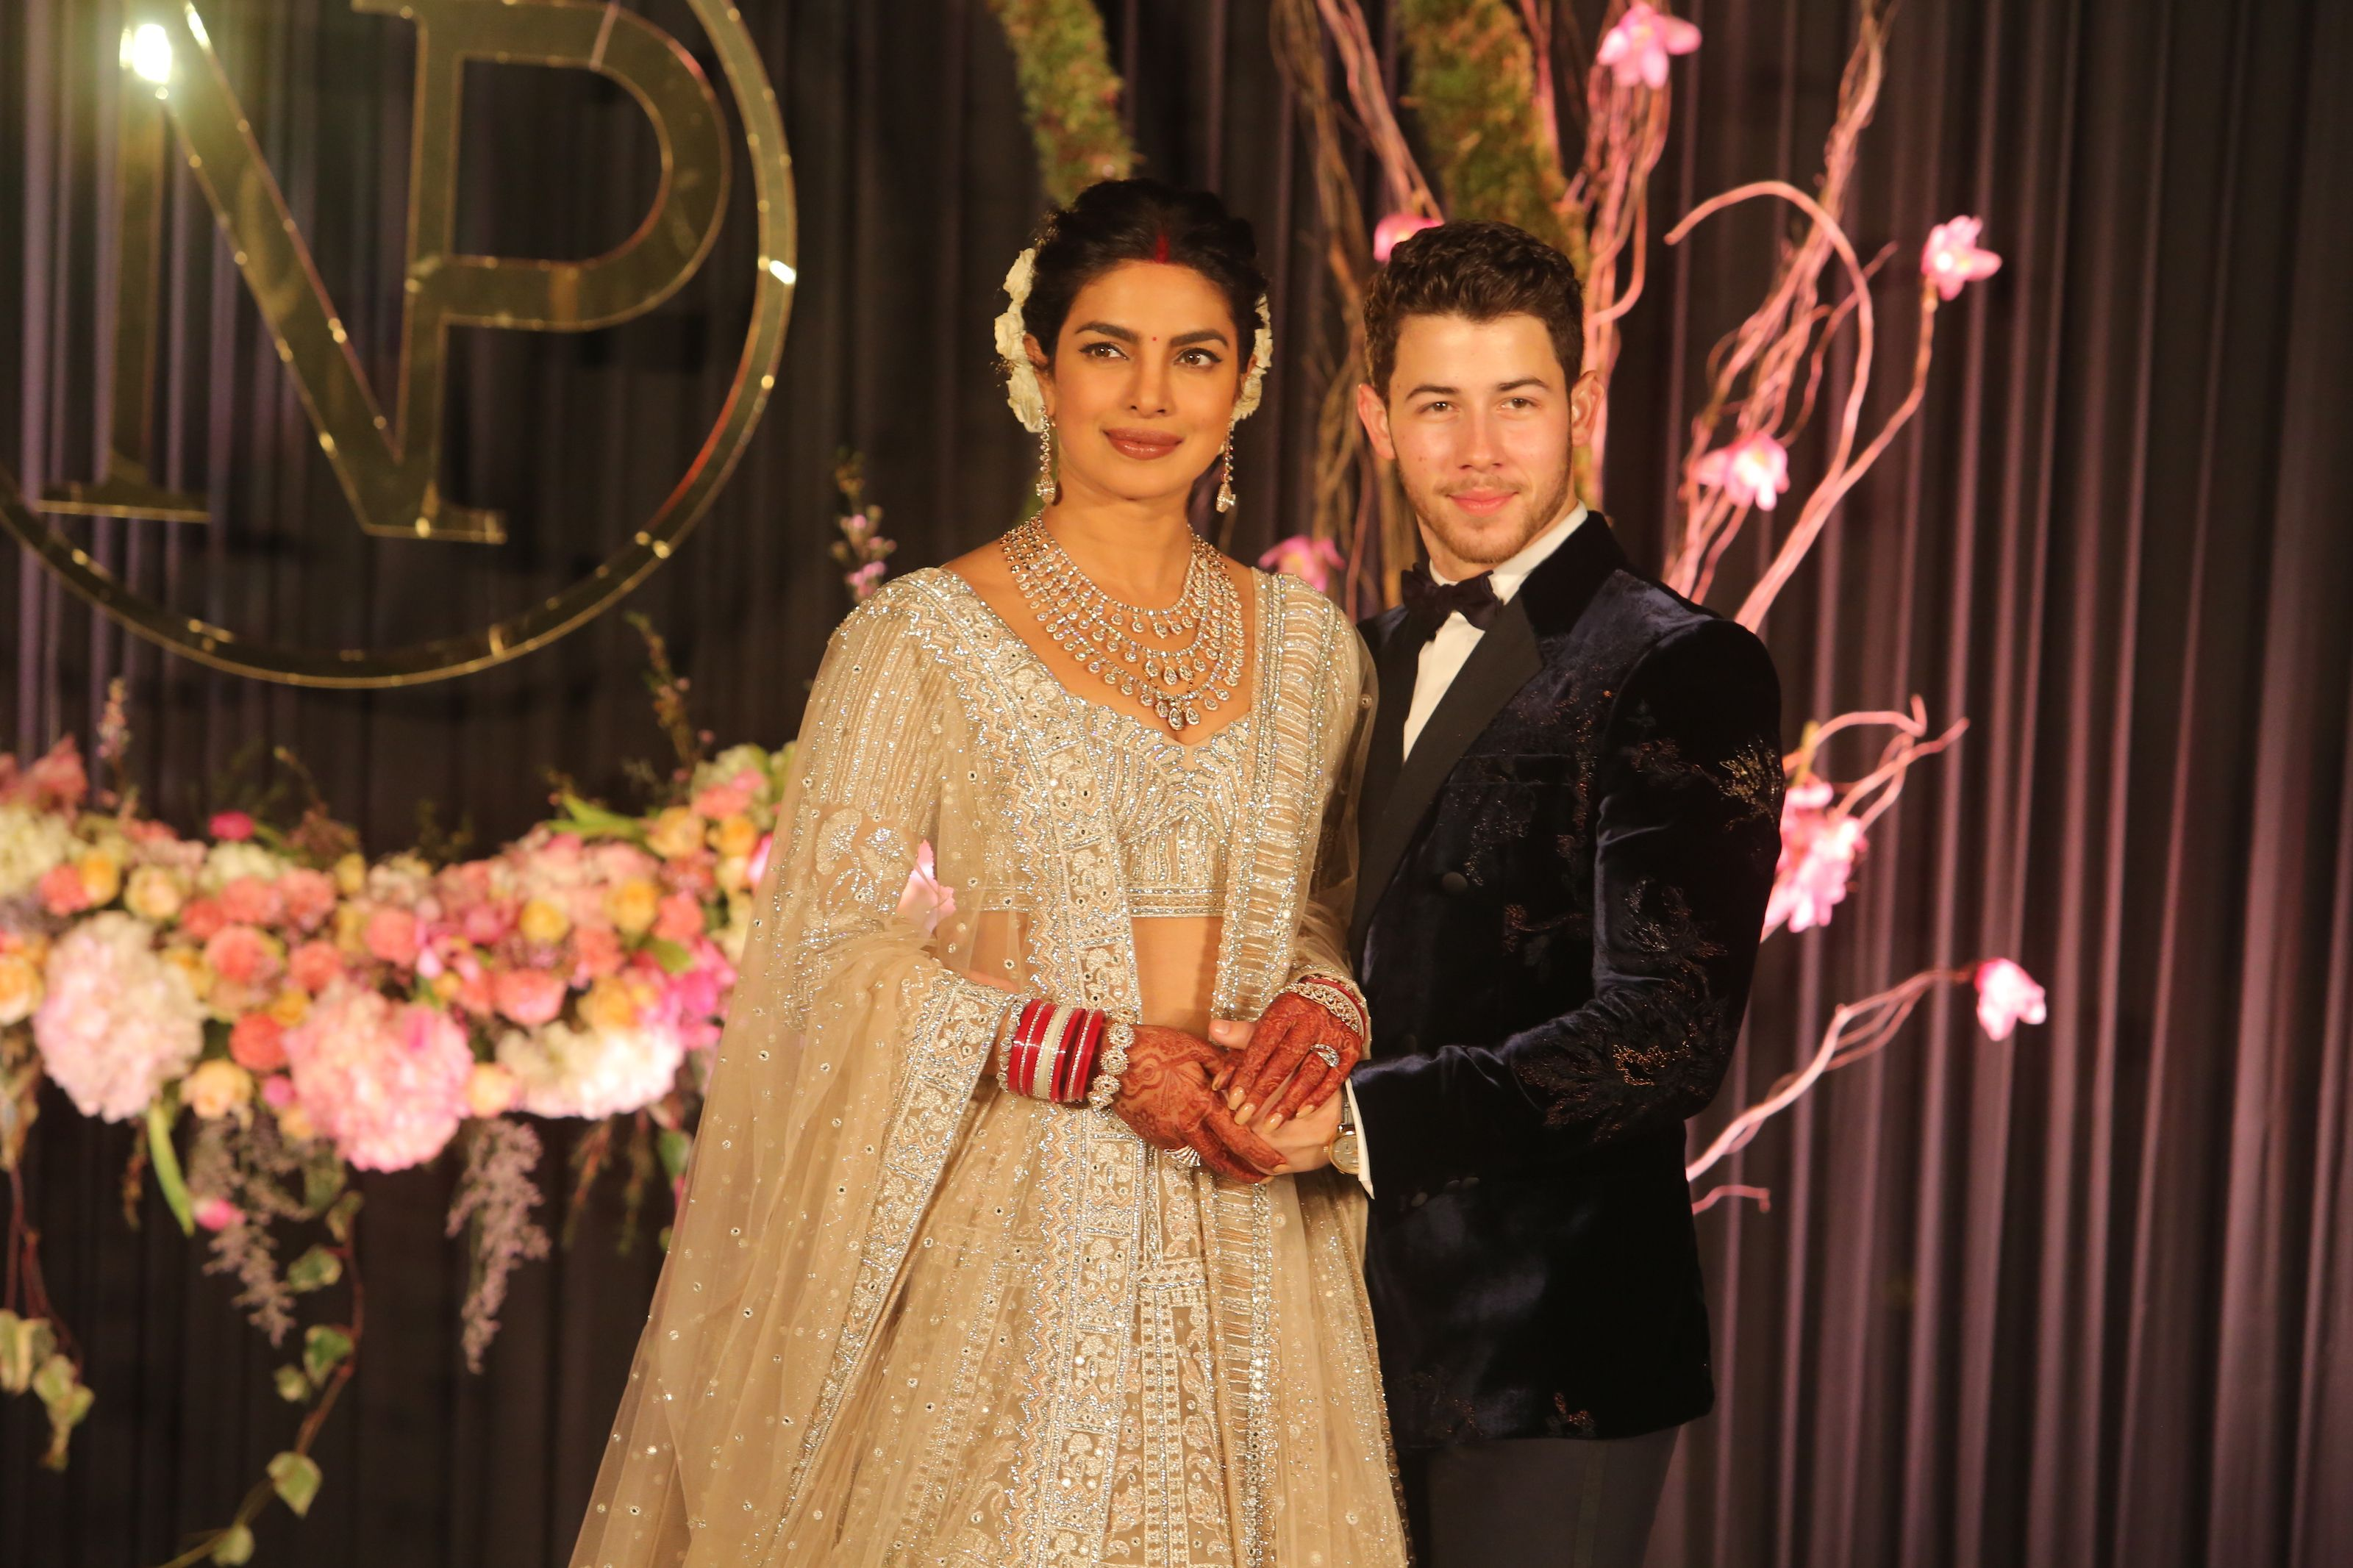 Priyanka Chopra Jonas Had Emergency Louboutin Shoes On Wedding Day